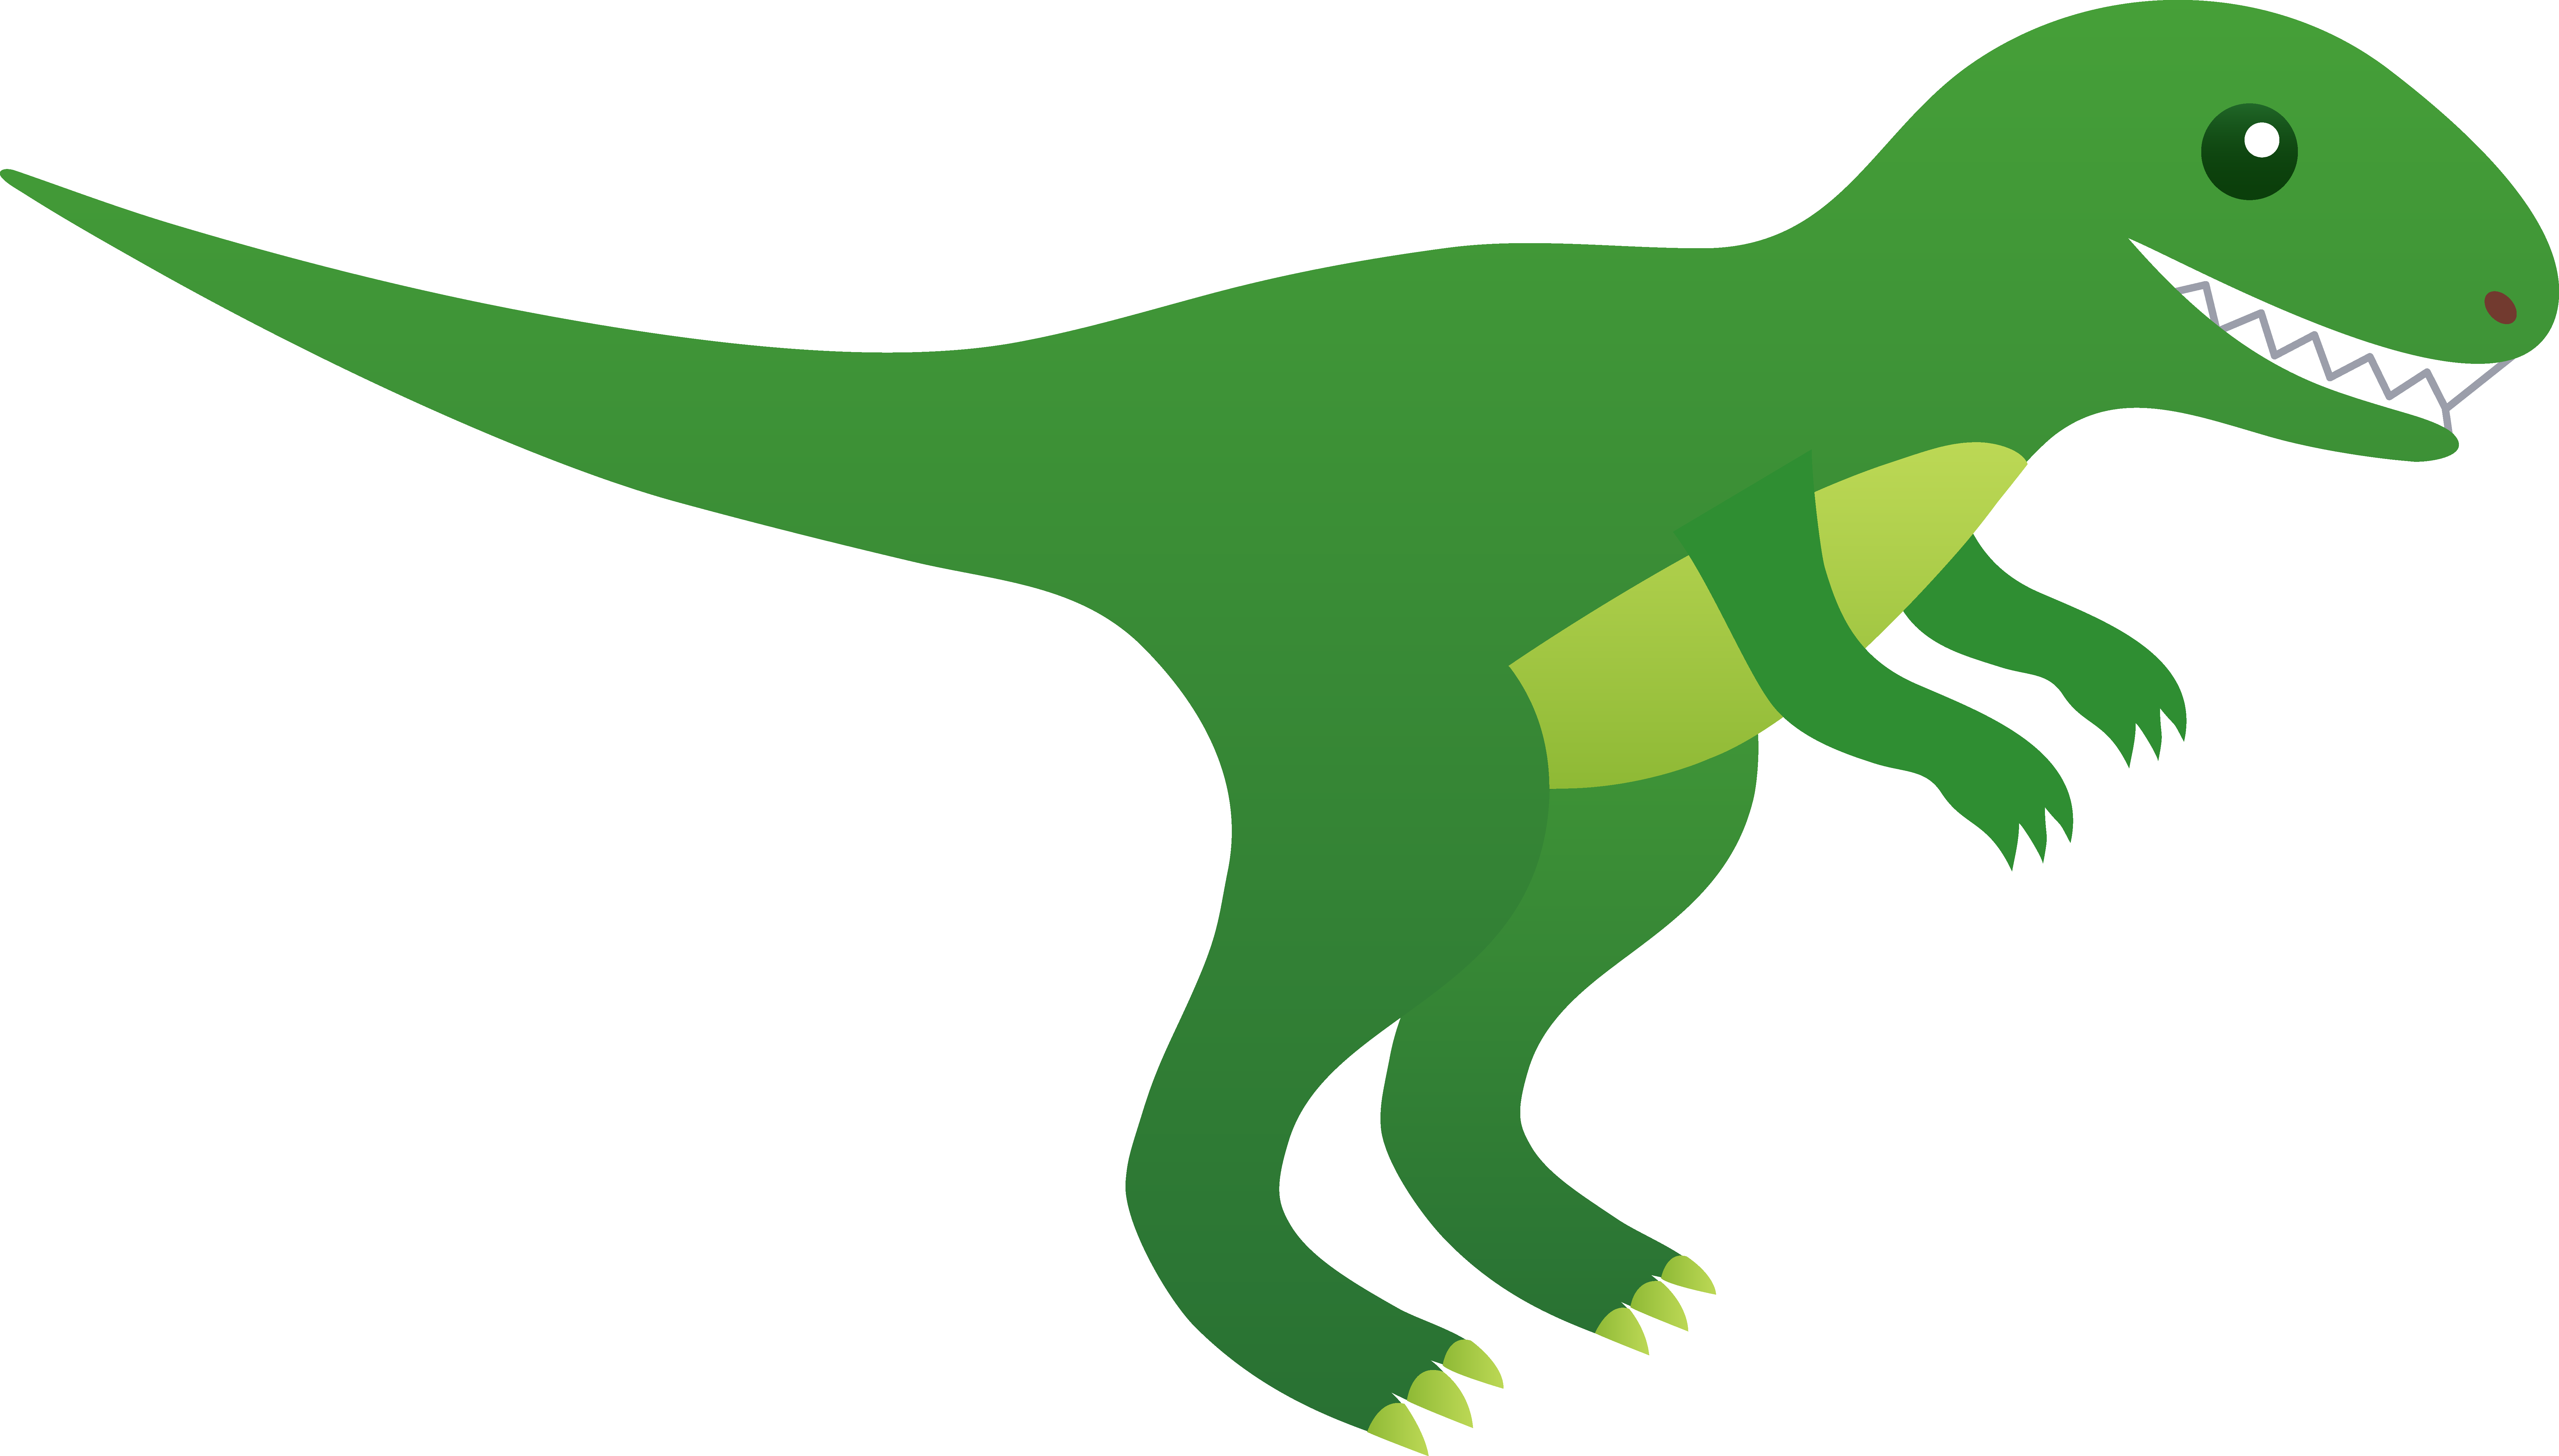 Dinosaur Clip Art To Color | Clipart Panda - Free Clipart Images